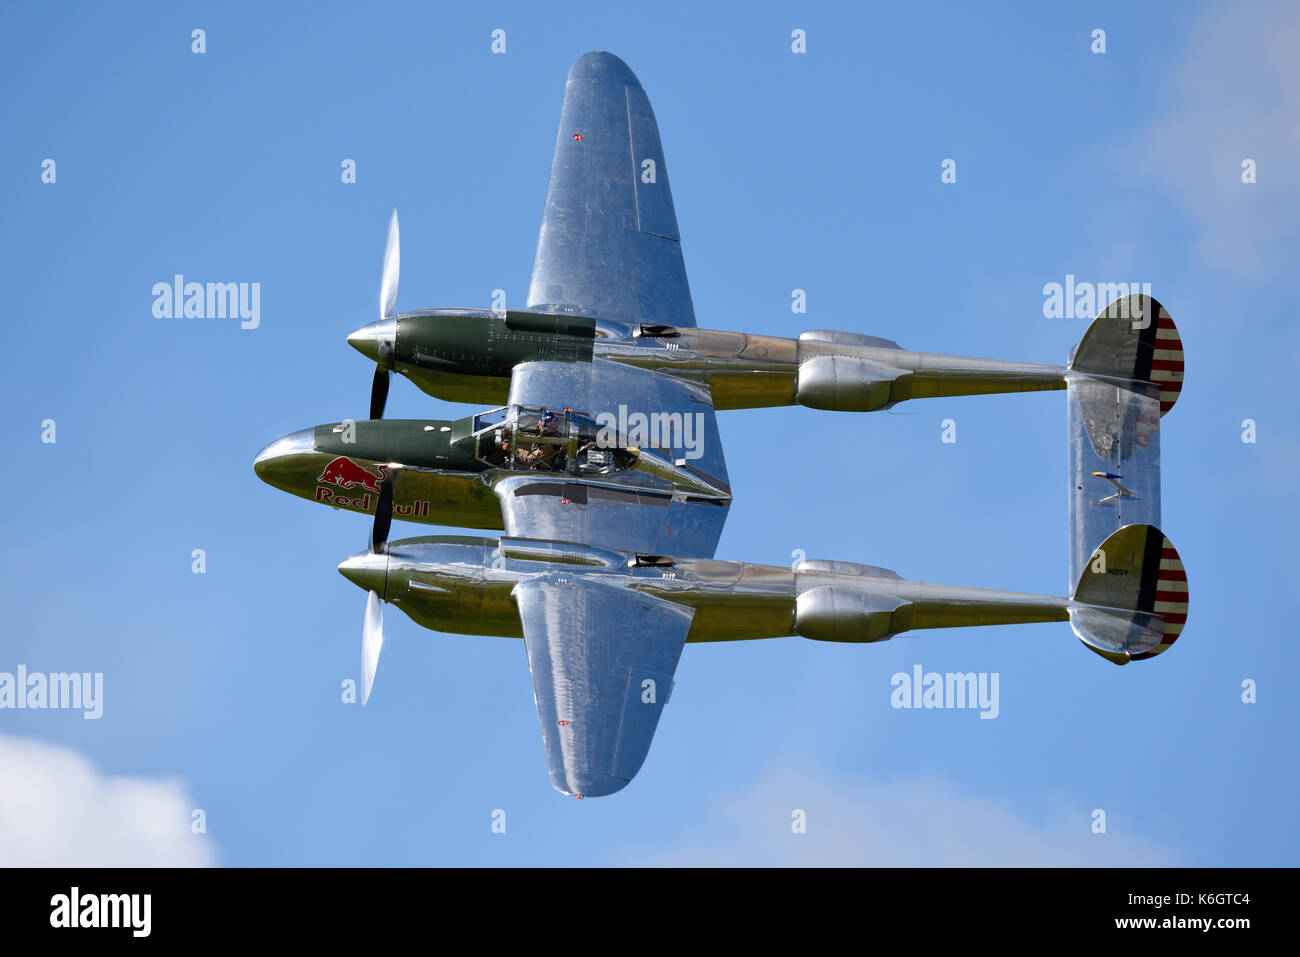 flying-bulls-red-bull-sponsored-lockheed-p-38-lightning-flying-at-K6GTC4.jpg